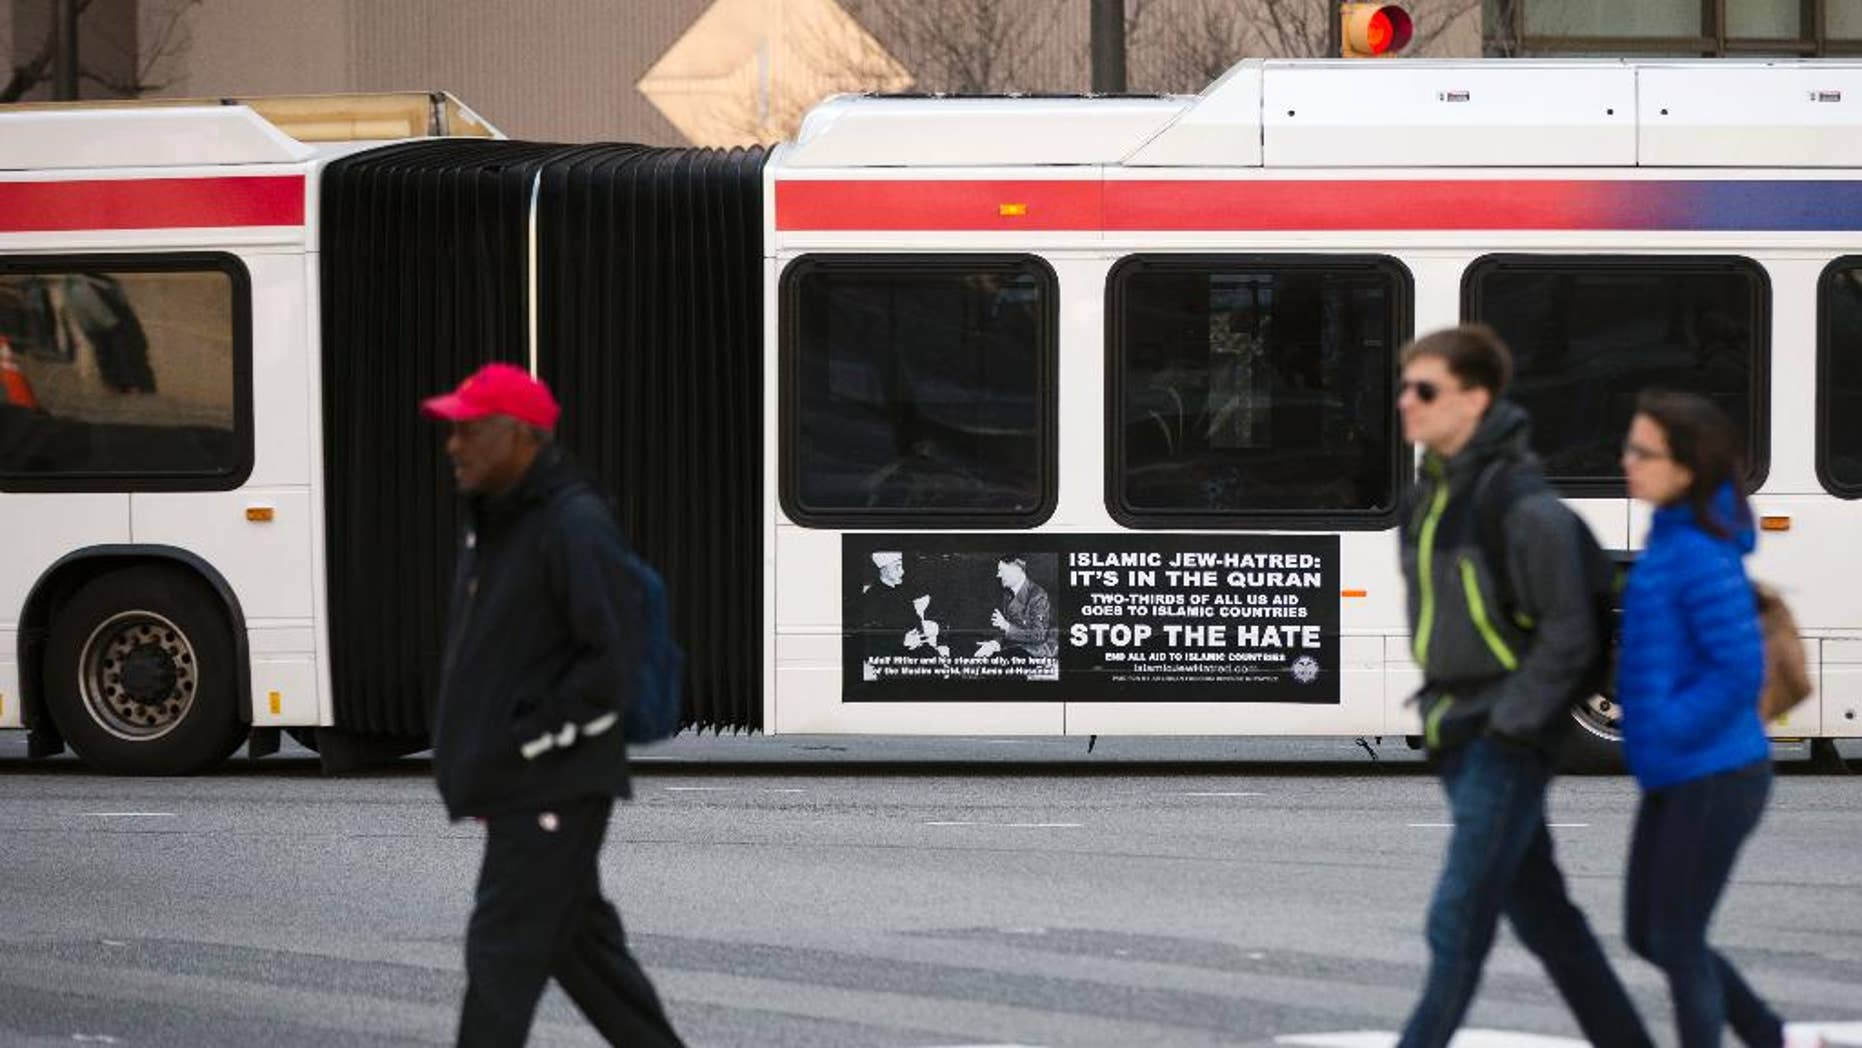 An ad from the pro-Israel American Freedom Defense Initiative is seen on an articulated Southeastern Pennsylvania Transportation Authority (SEPTA) bus featuring a 1941 photograph of Hitler and supporter Hajj Amin al-Husseini, a Palestinian Arab nationalist, Wednesday, April 1, 2015, in Philadelphia. A federal judge last month ordered SEPTA to accept the ads. The agency said last week it wouldn't appeal. (AP Photo/Matt Rourke)